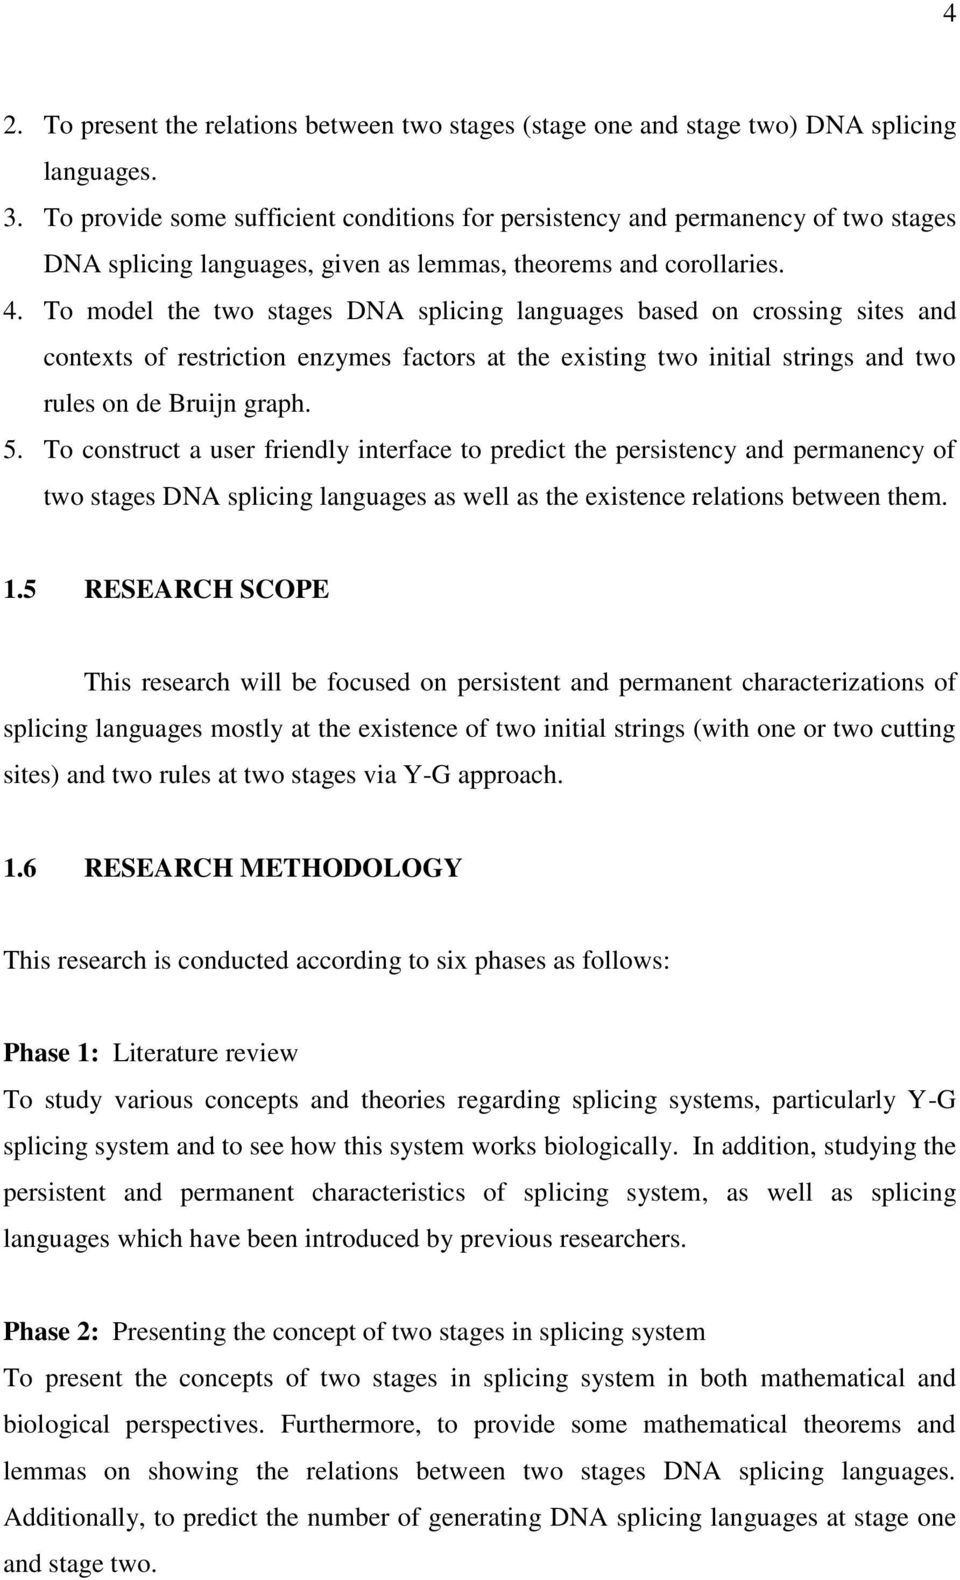 To model the two stages DNA splicing languages based on crossing sites and contexts of restriction enzymes factors at the existing two initial strings and two rules on de Bruijn graph. 5.